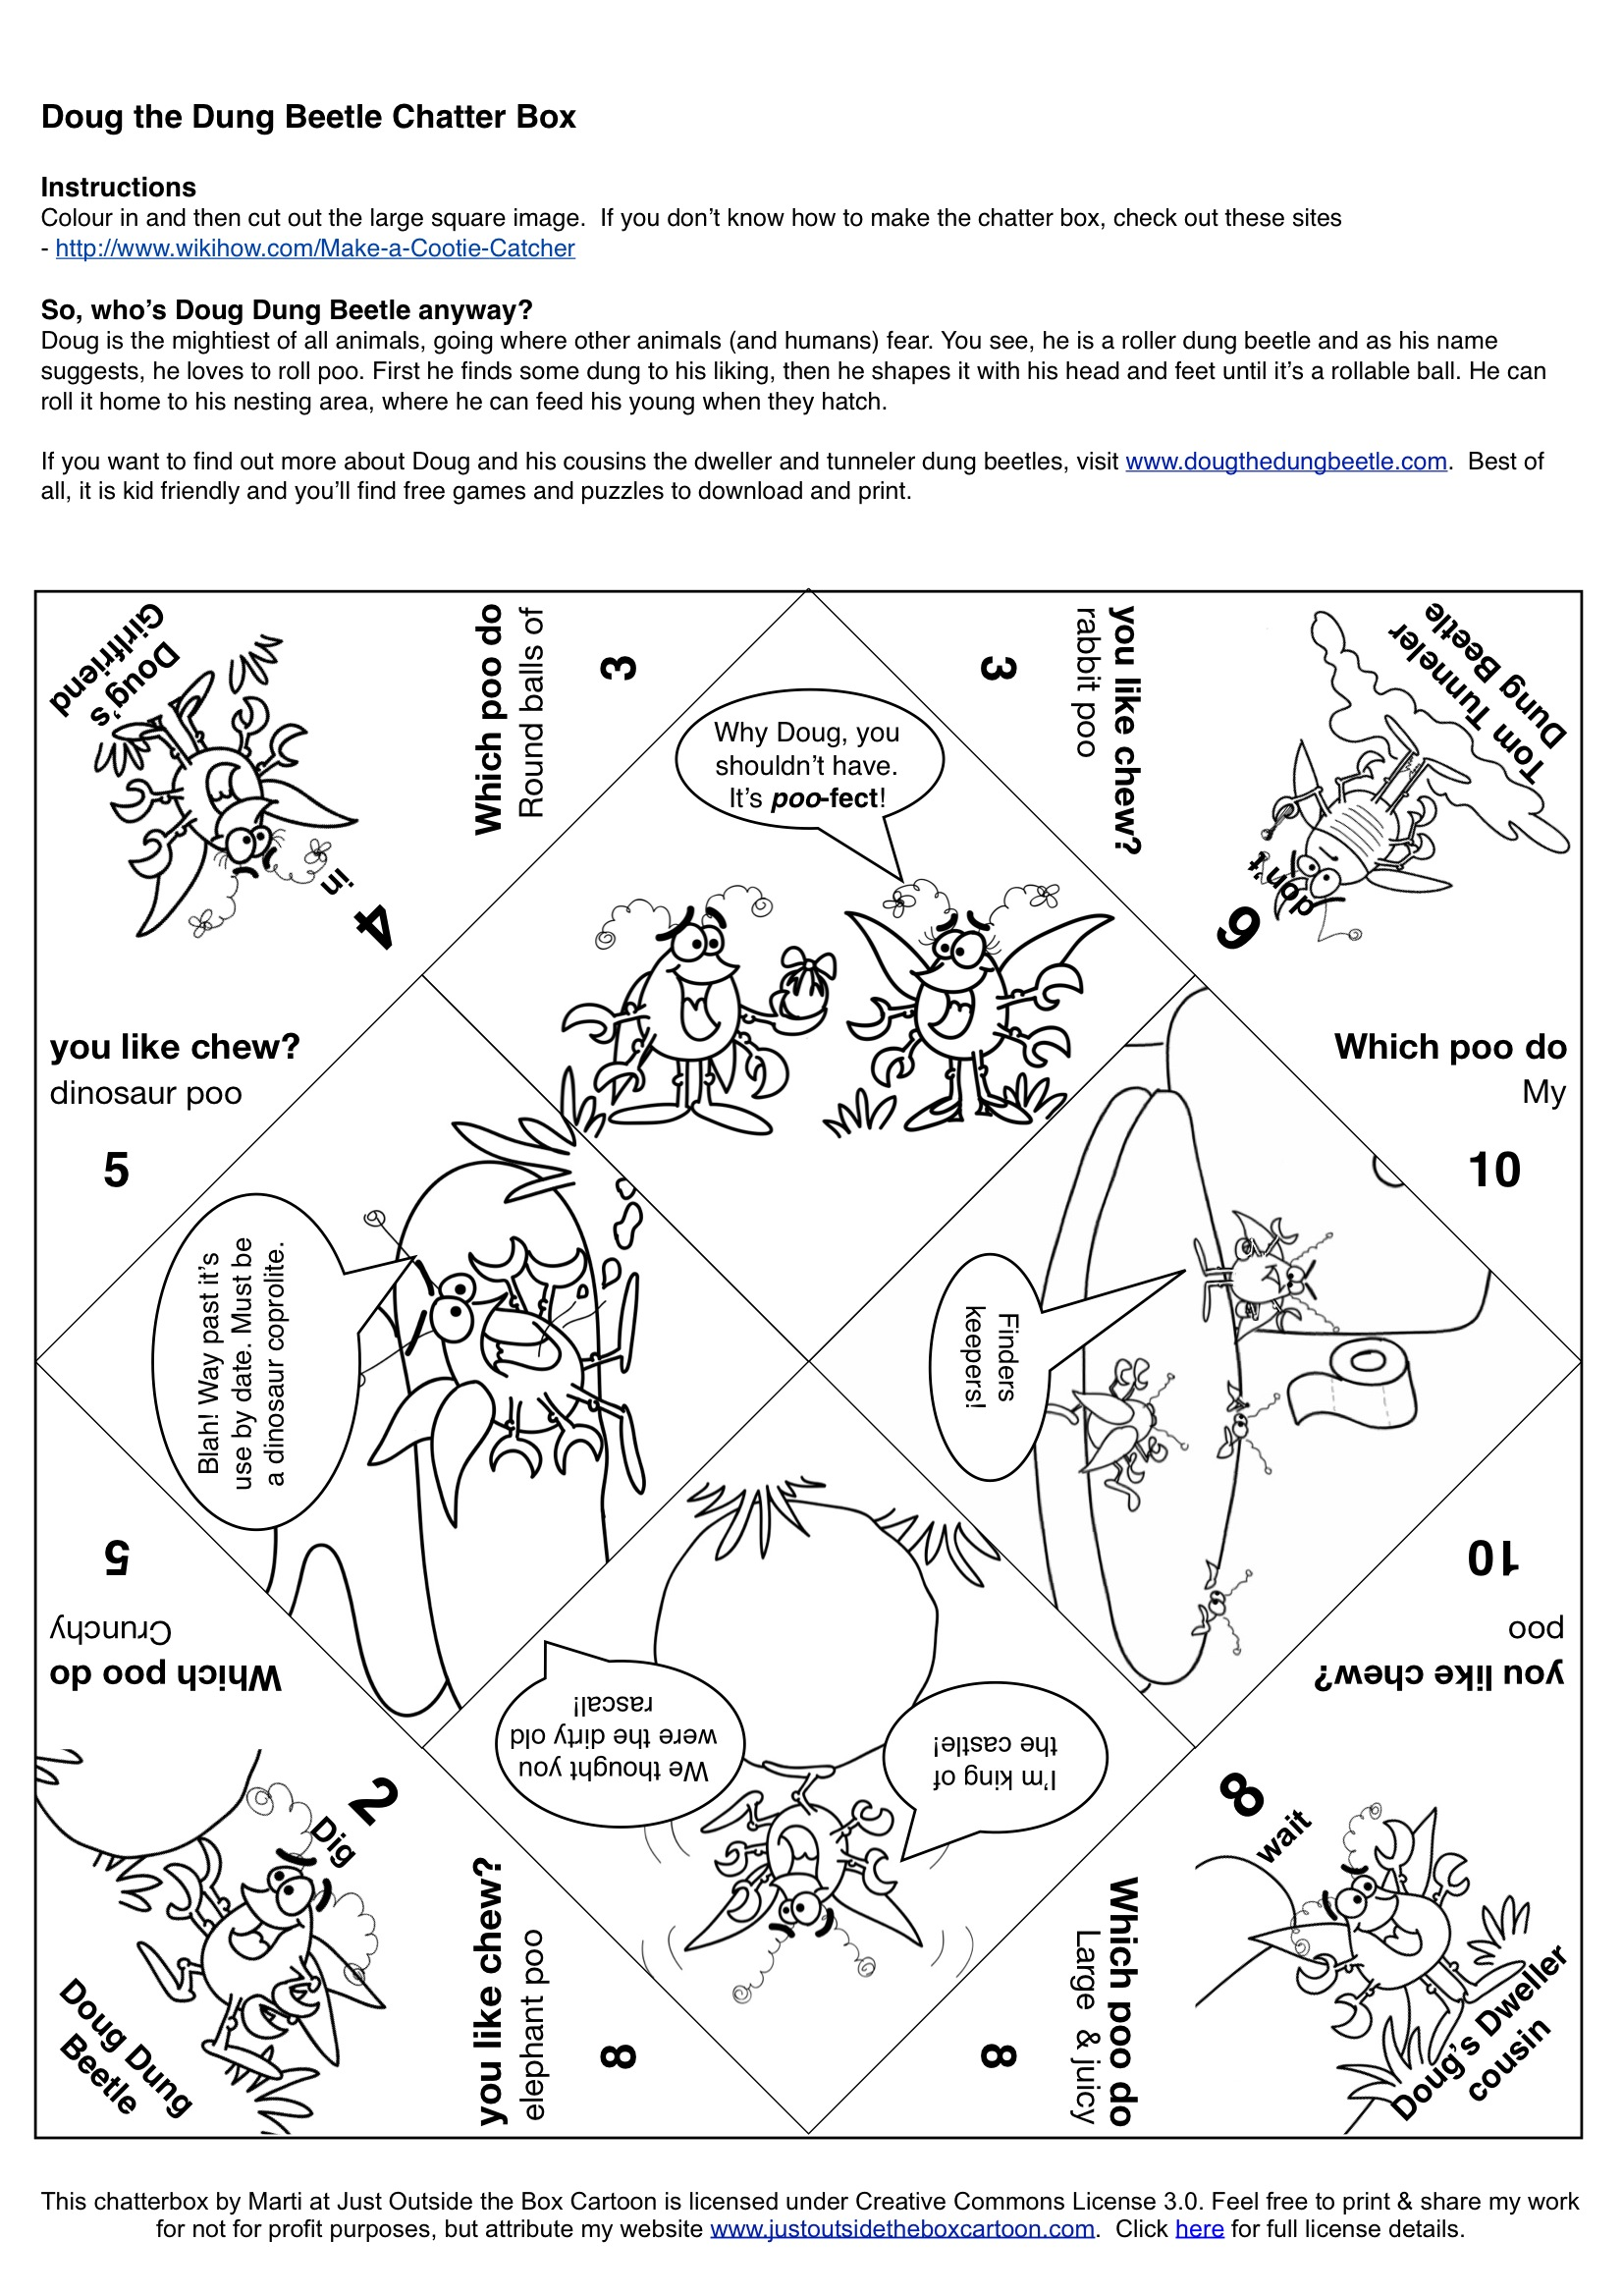 how to make a chatterbox template - cootie catcher archives just outside the box cartoon